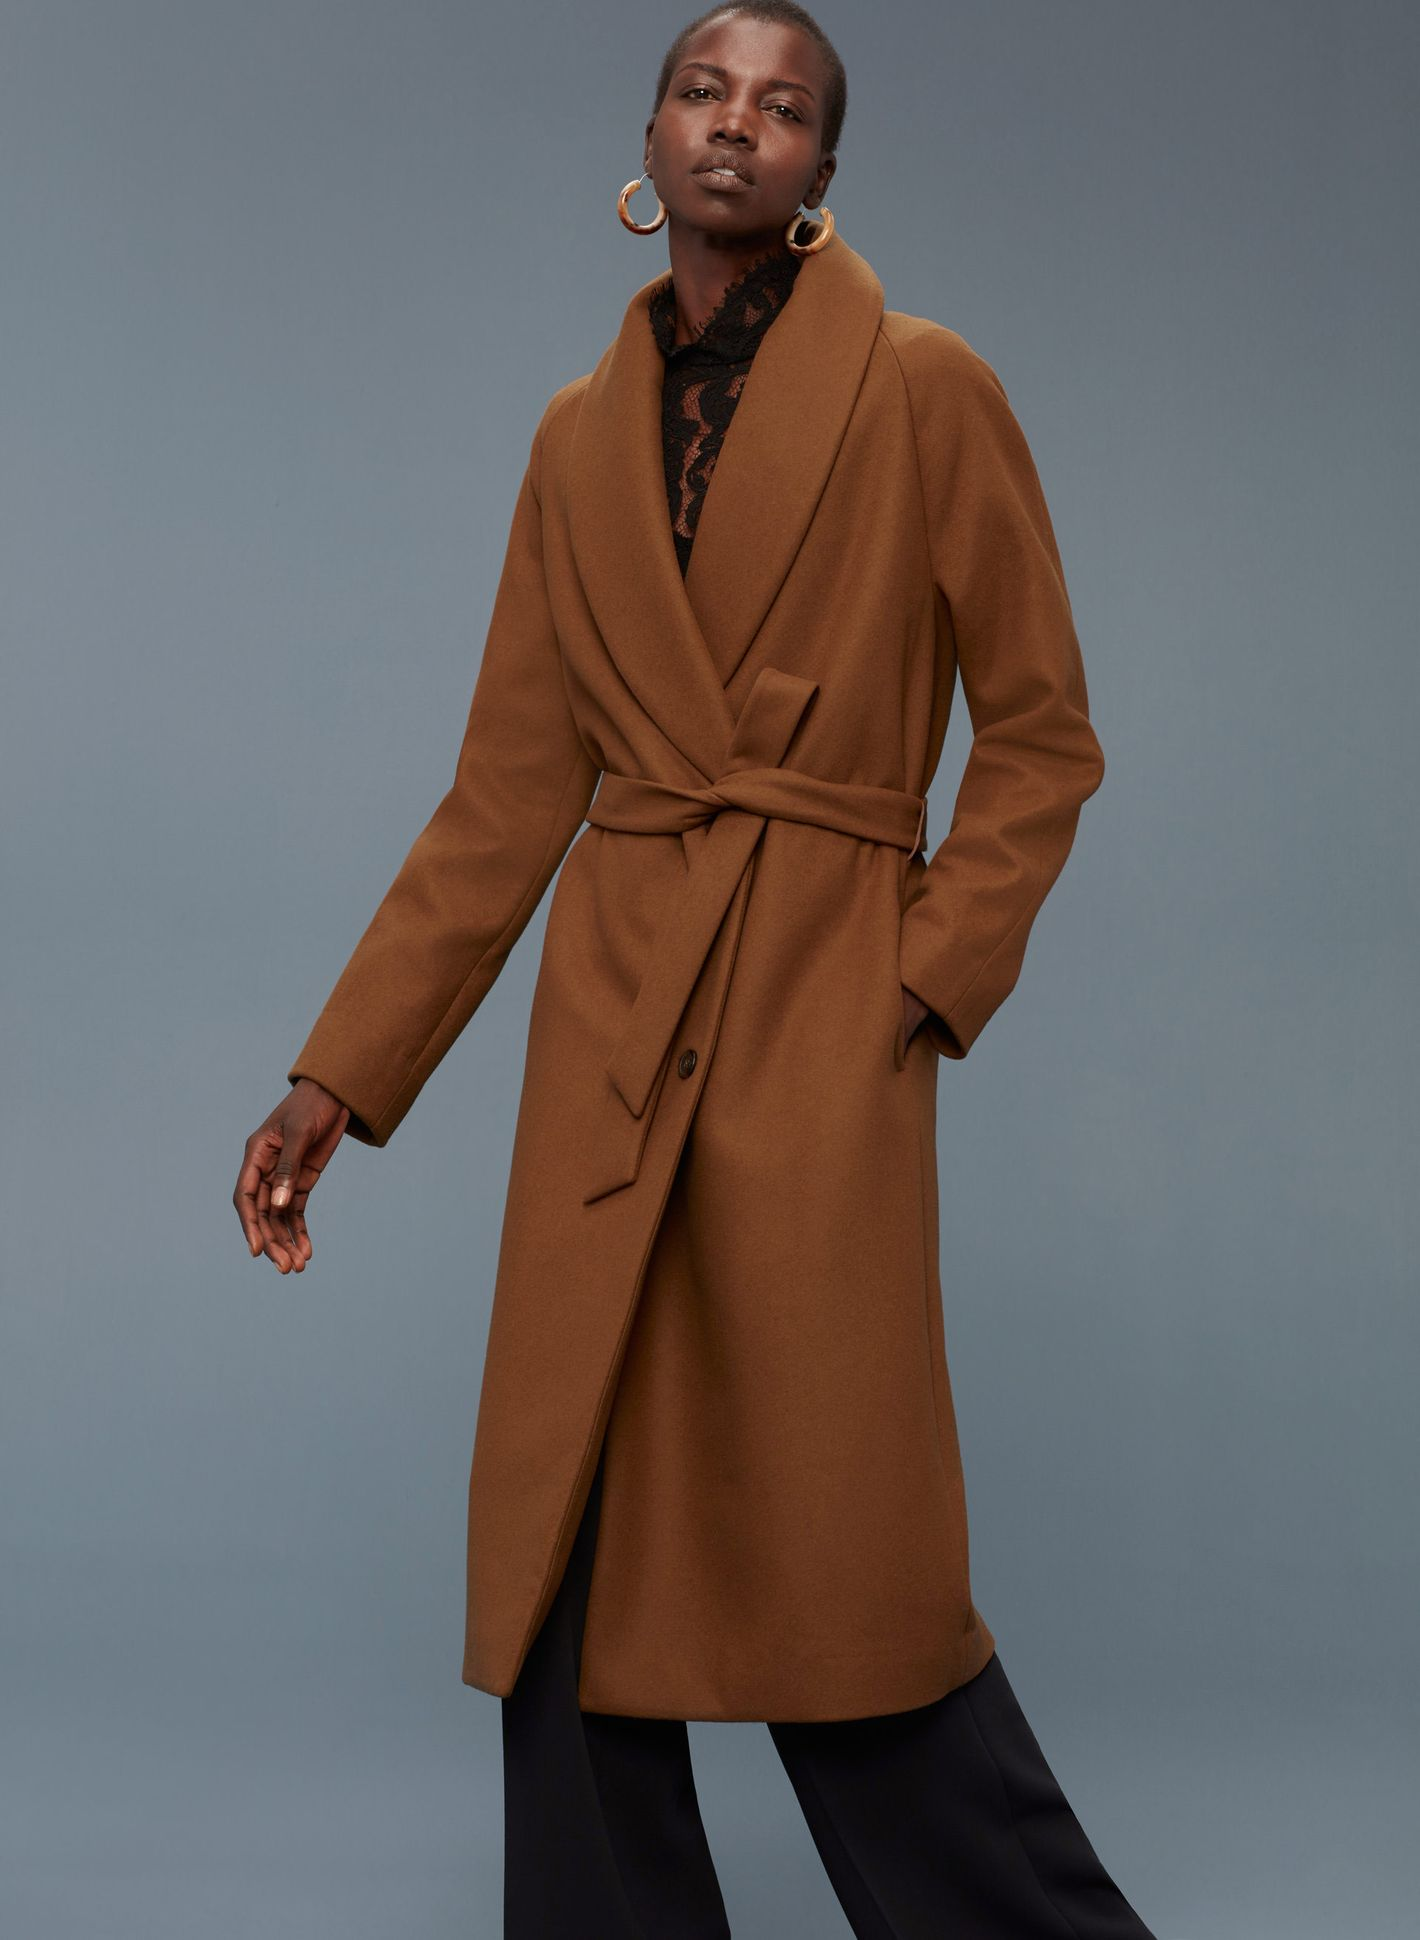 b45cd13c867a The 17 Best Camel Coats to Buy Right Now